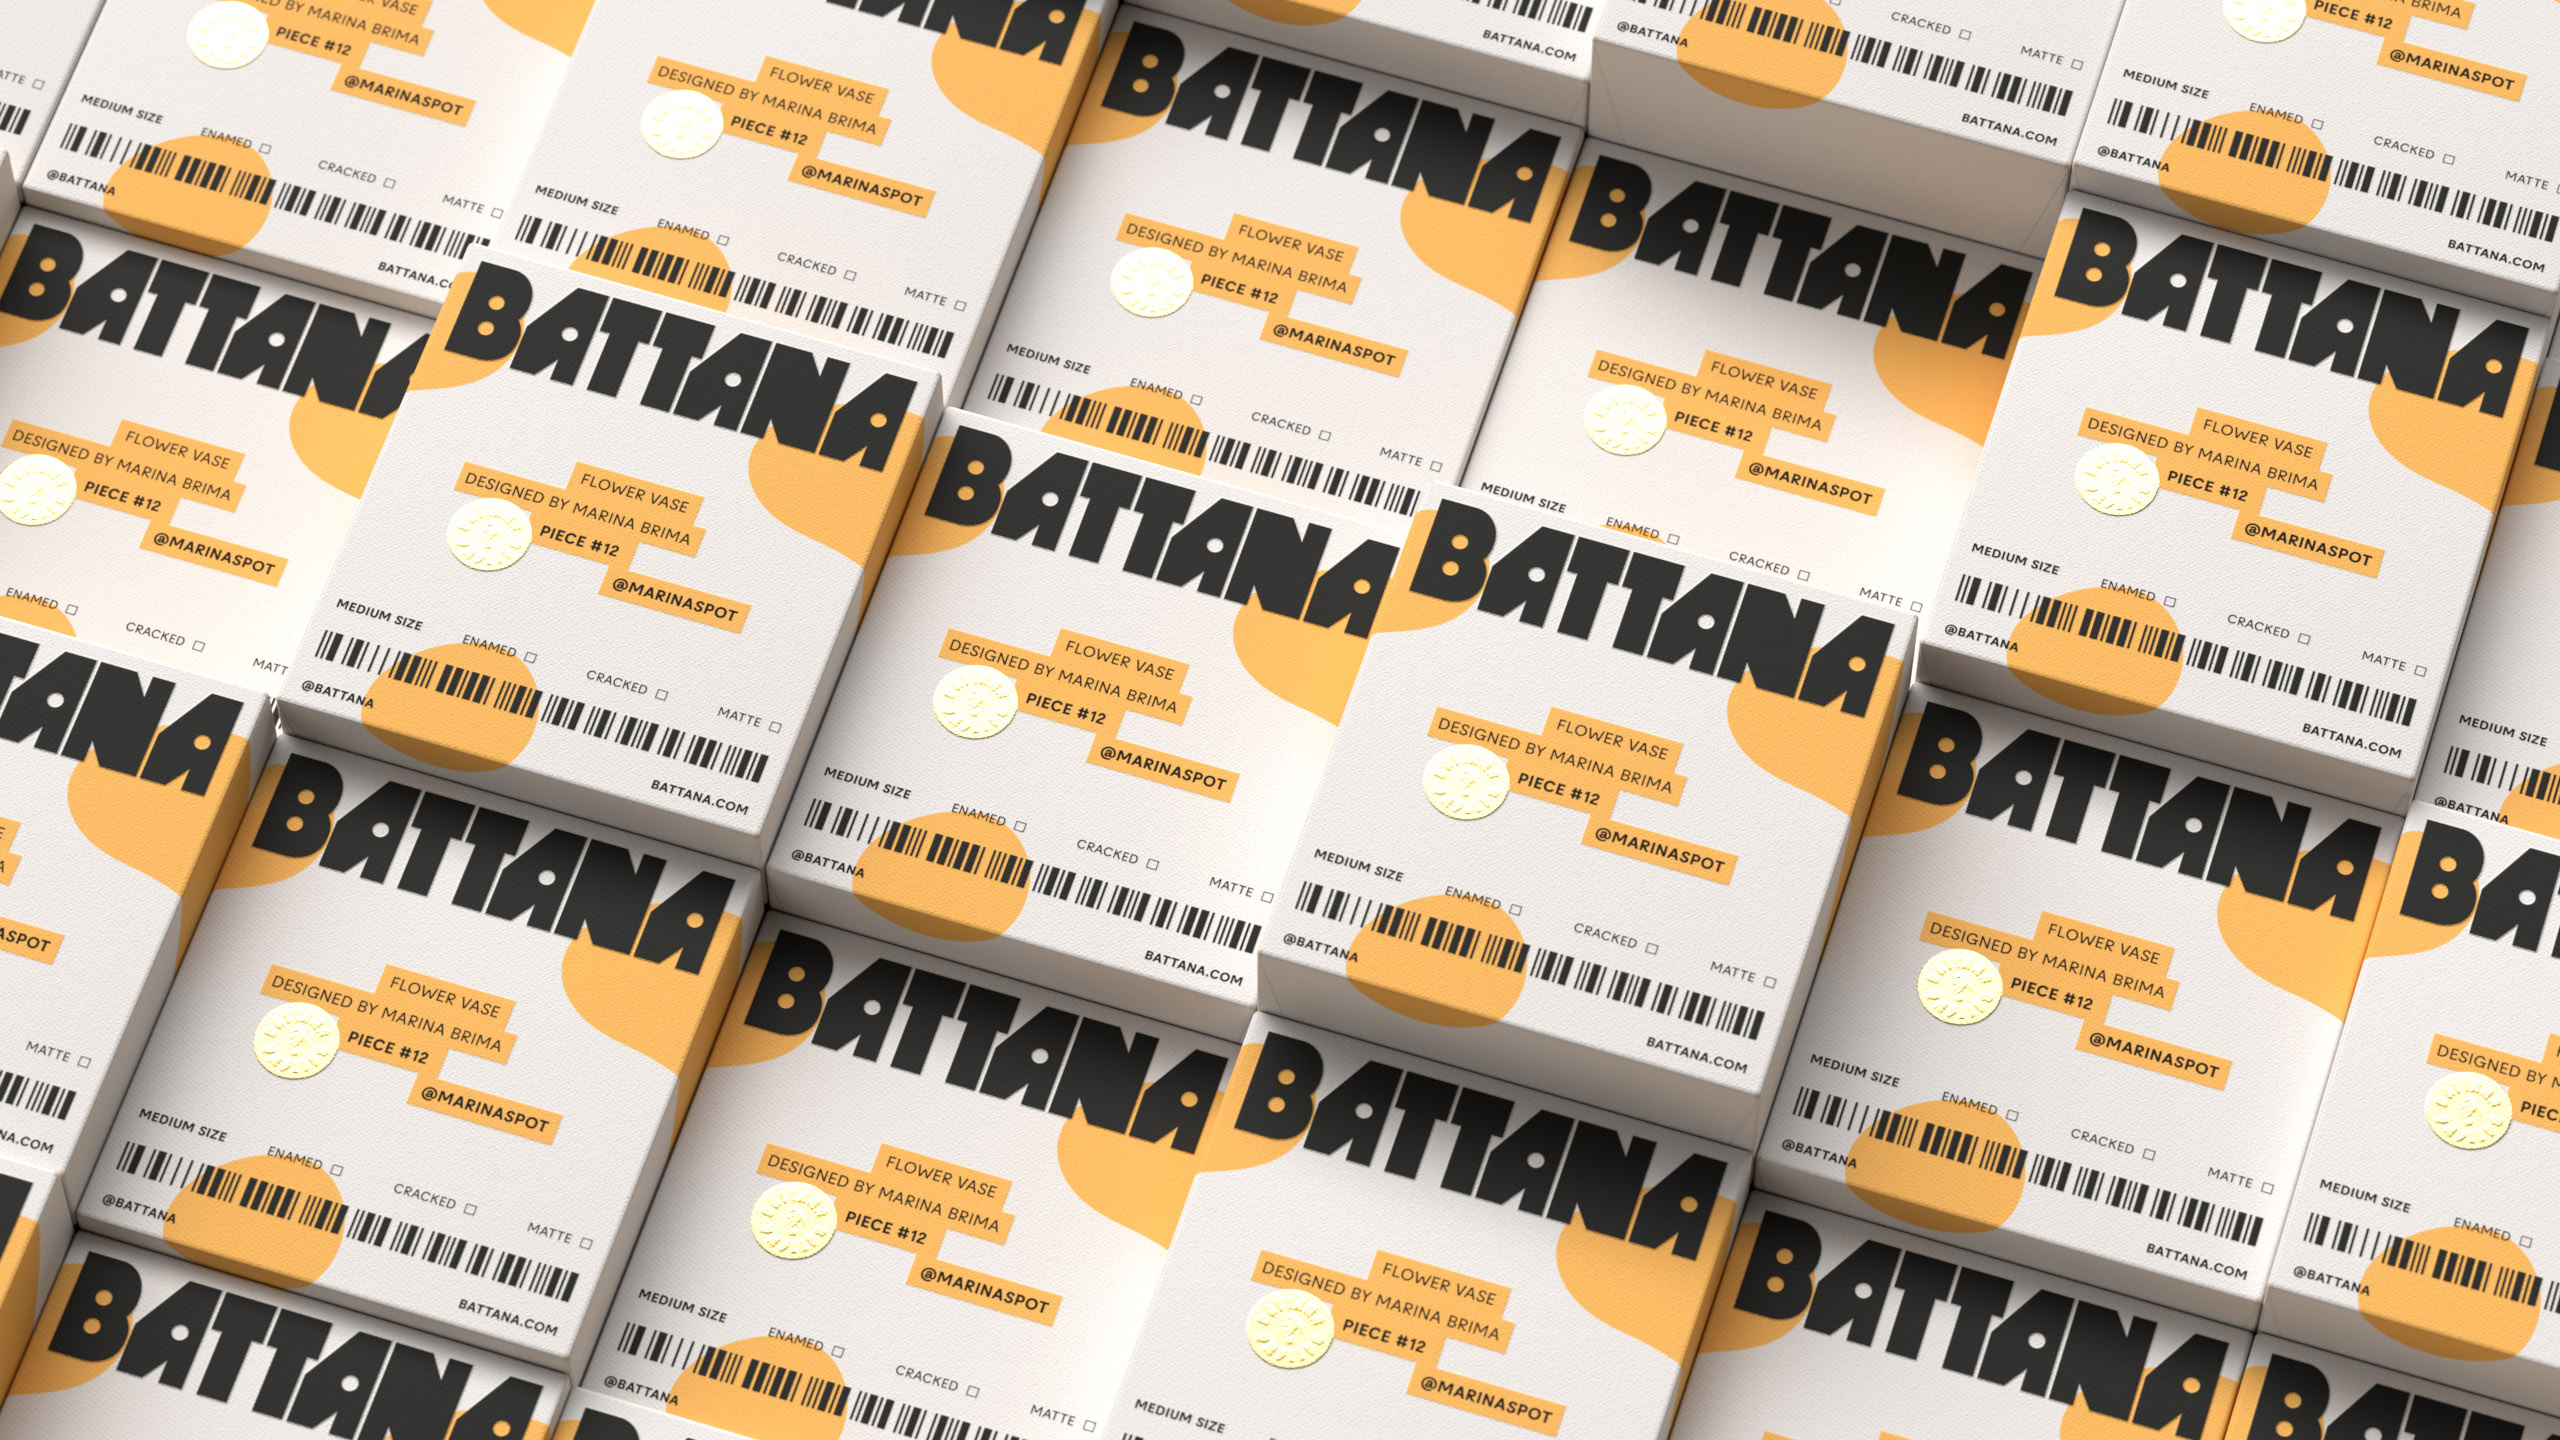 Battana Branding and Packaging Design by Moises Baca